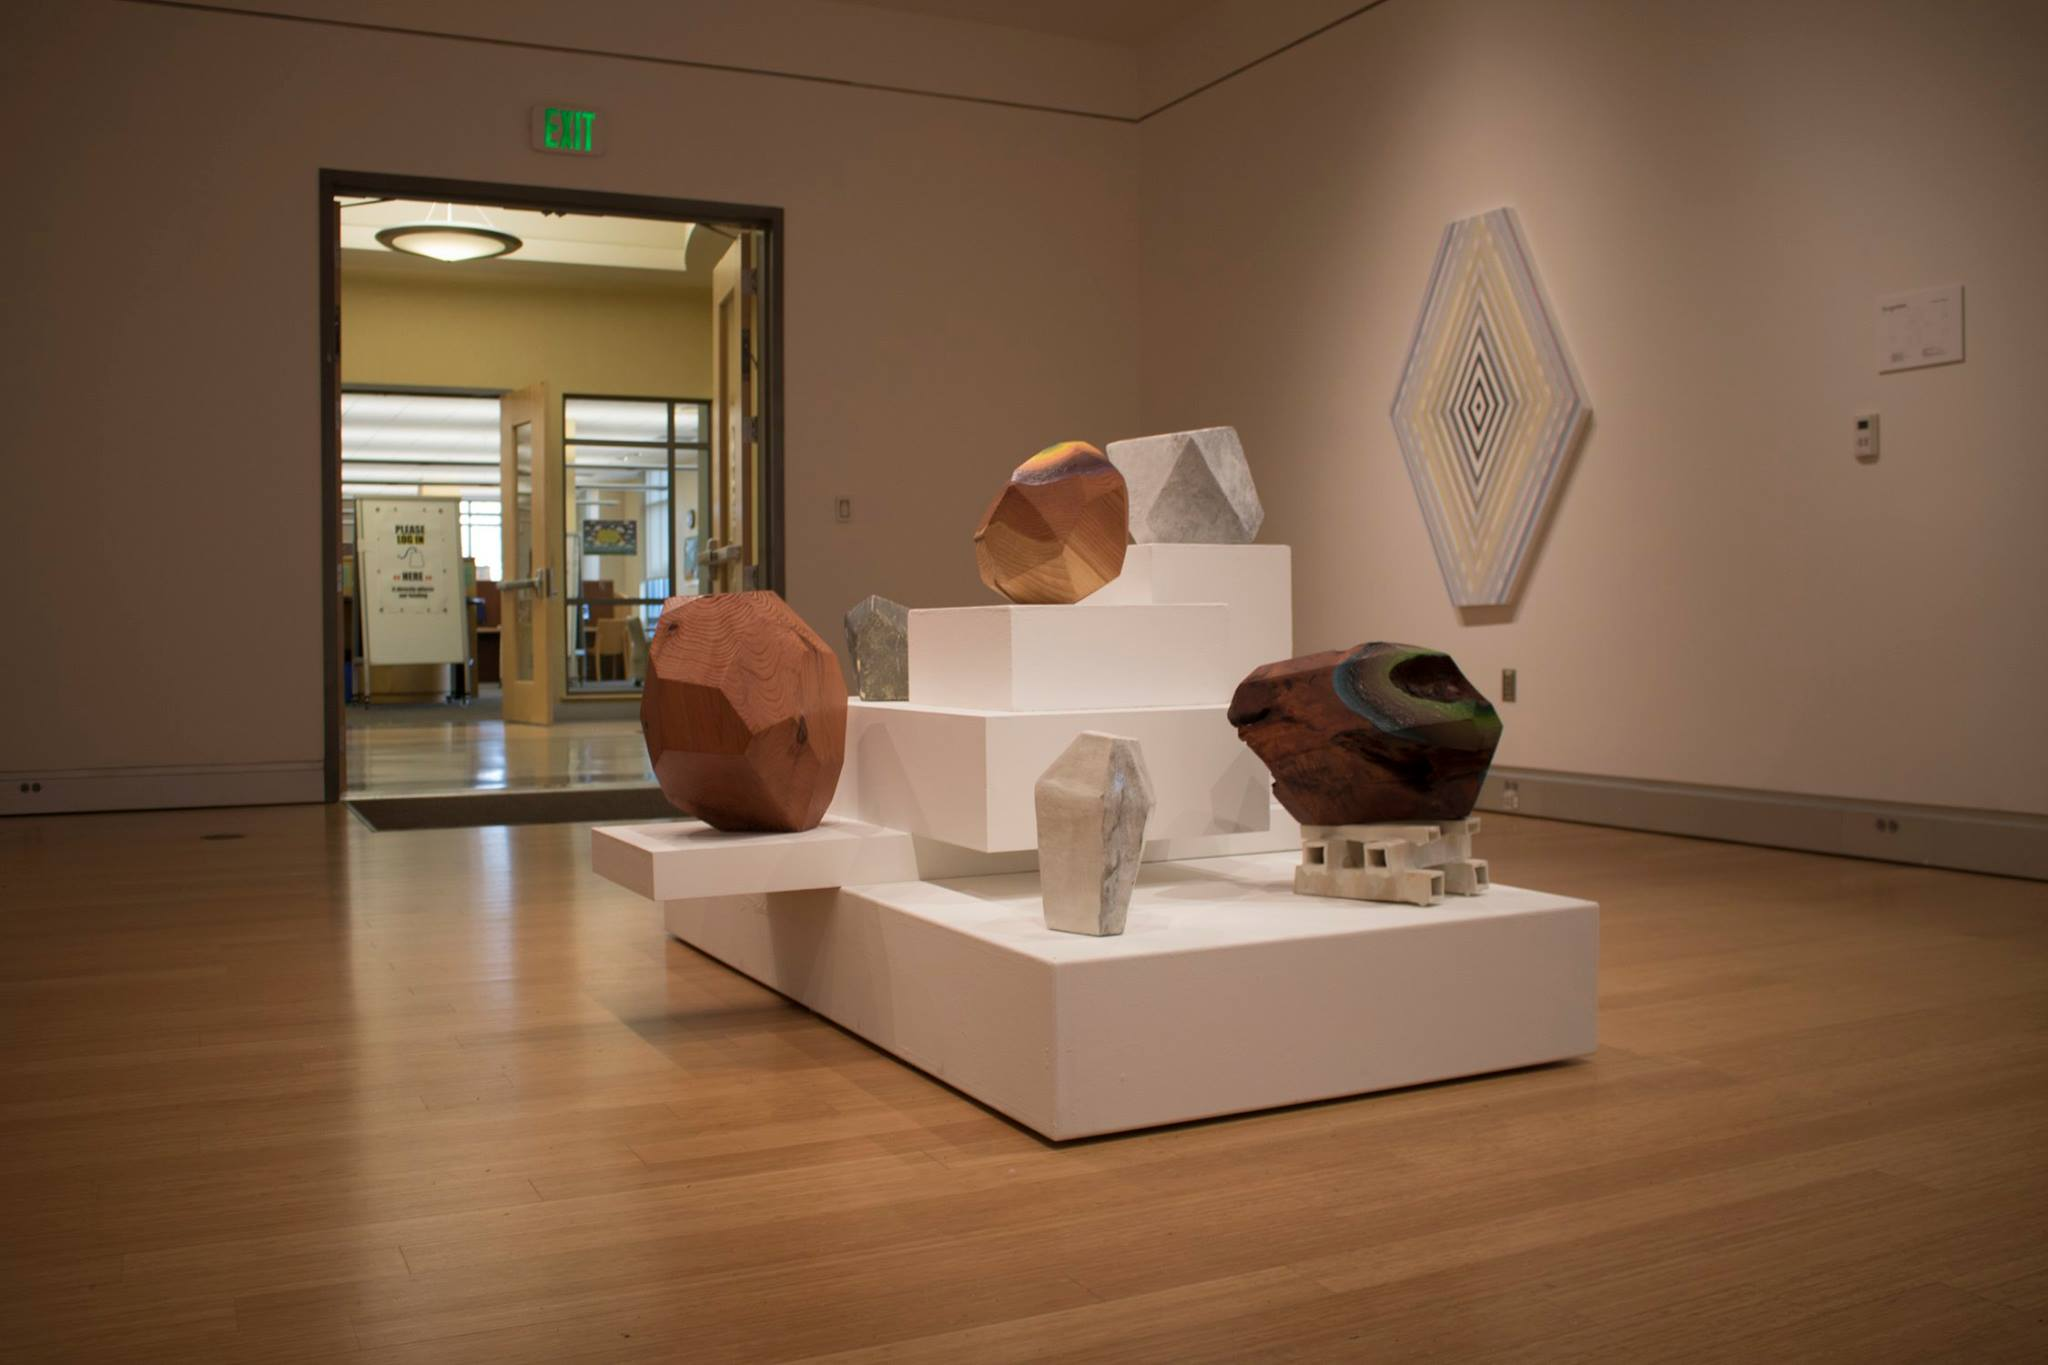 Curated display conceptualizing artistic abstraction below SRJC's Doyle library.